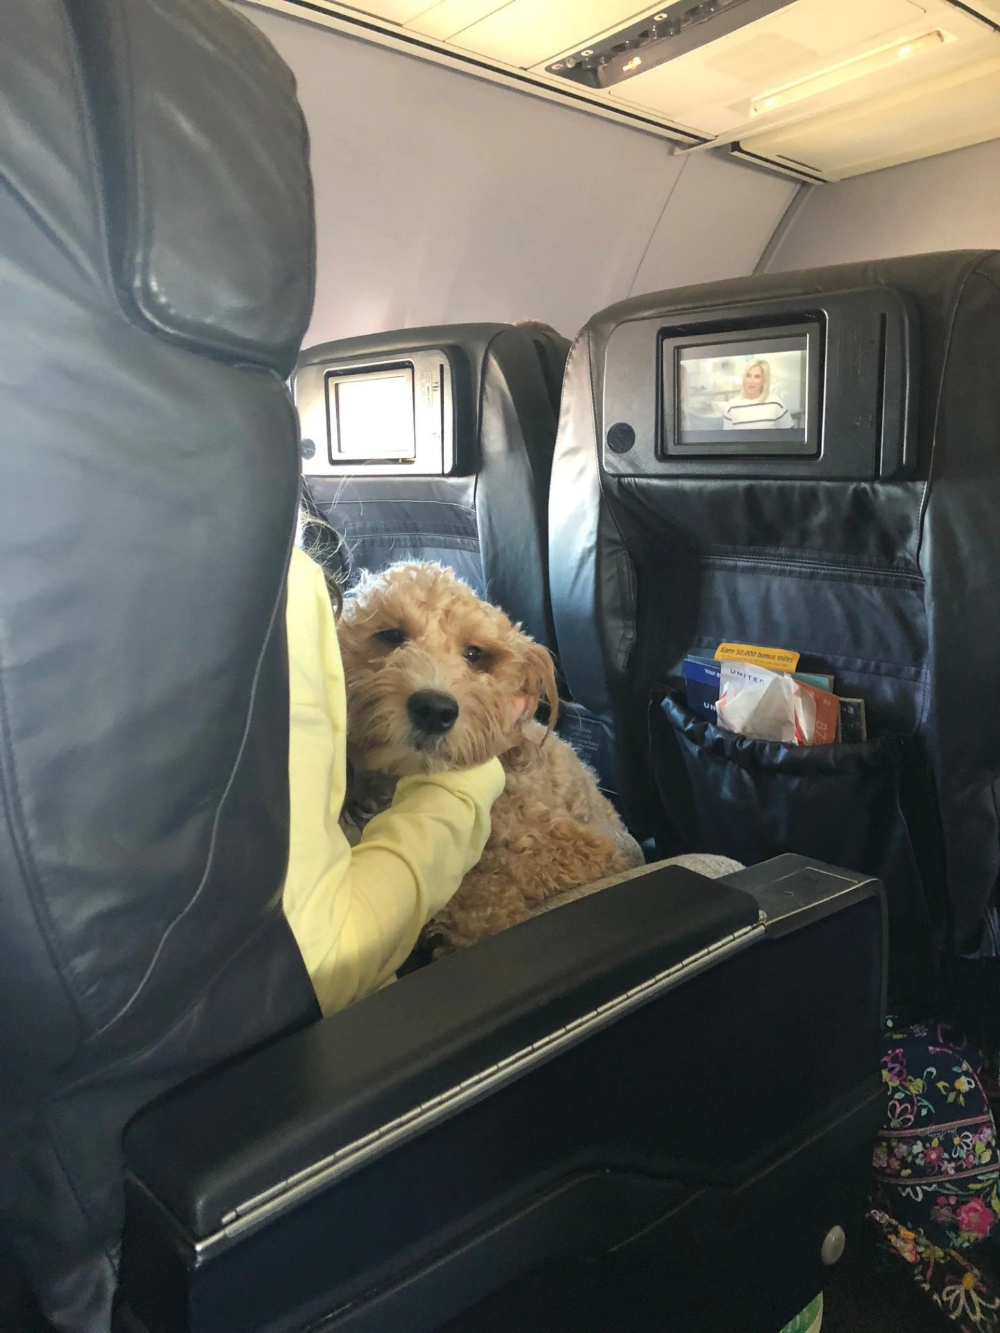 If emotional support animals are banned from planes, some